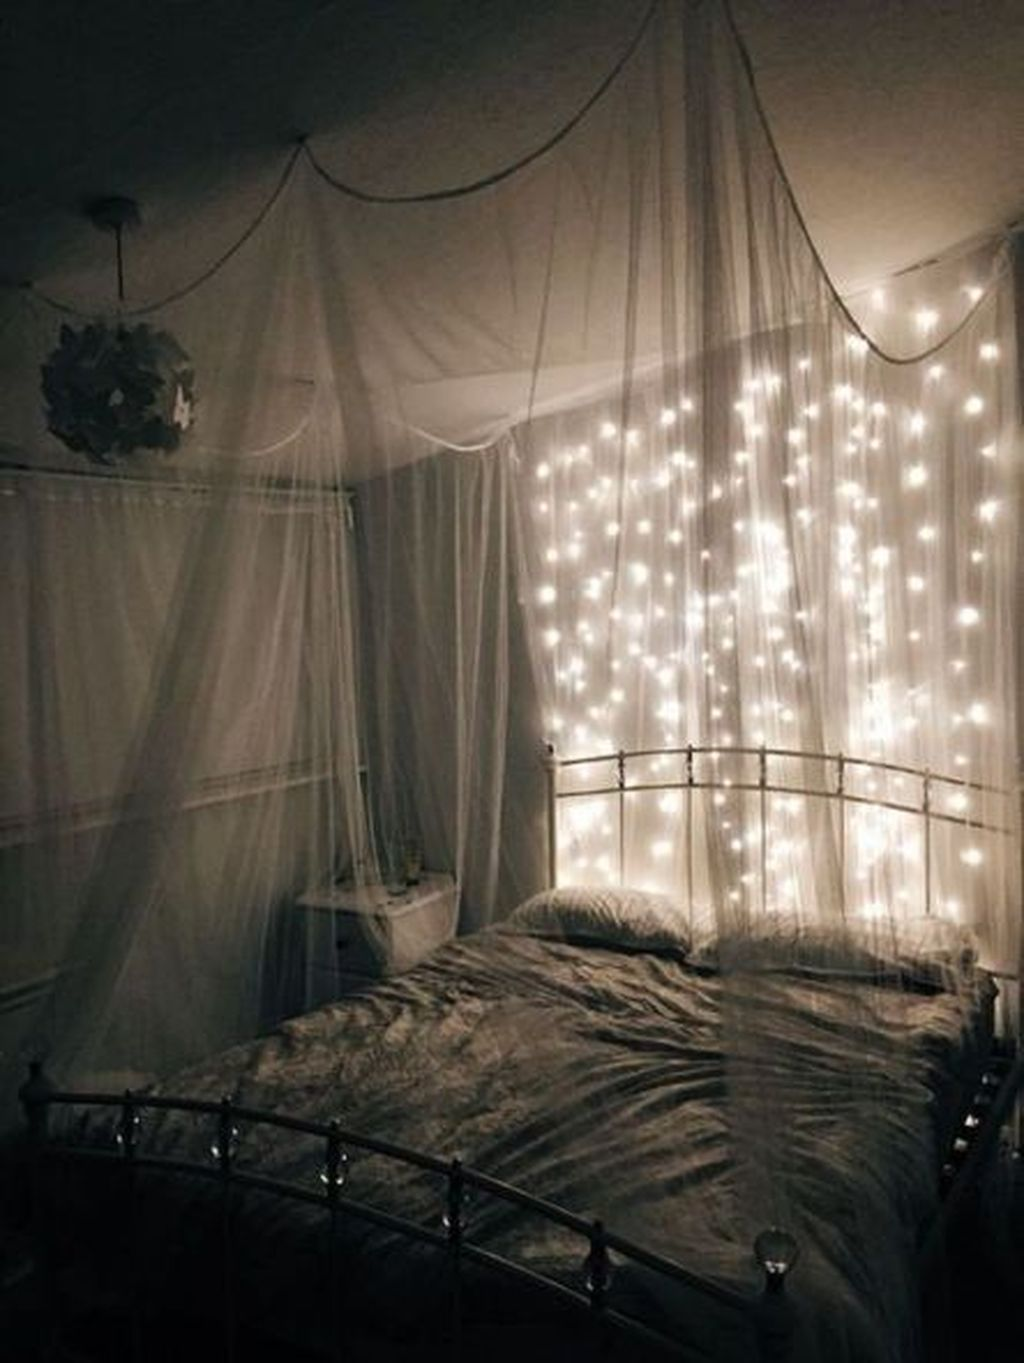 Awesome Romantic Bedroom Lighting Ideas You Will Love 24